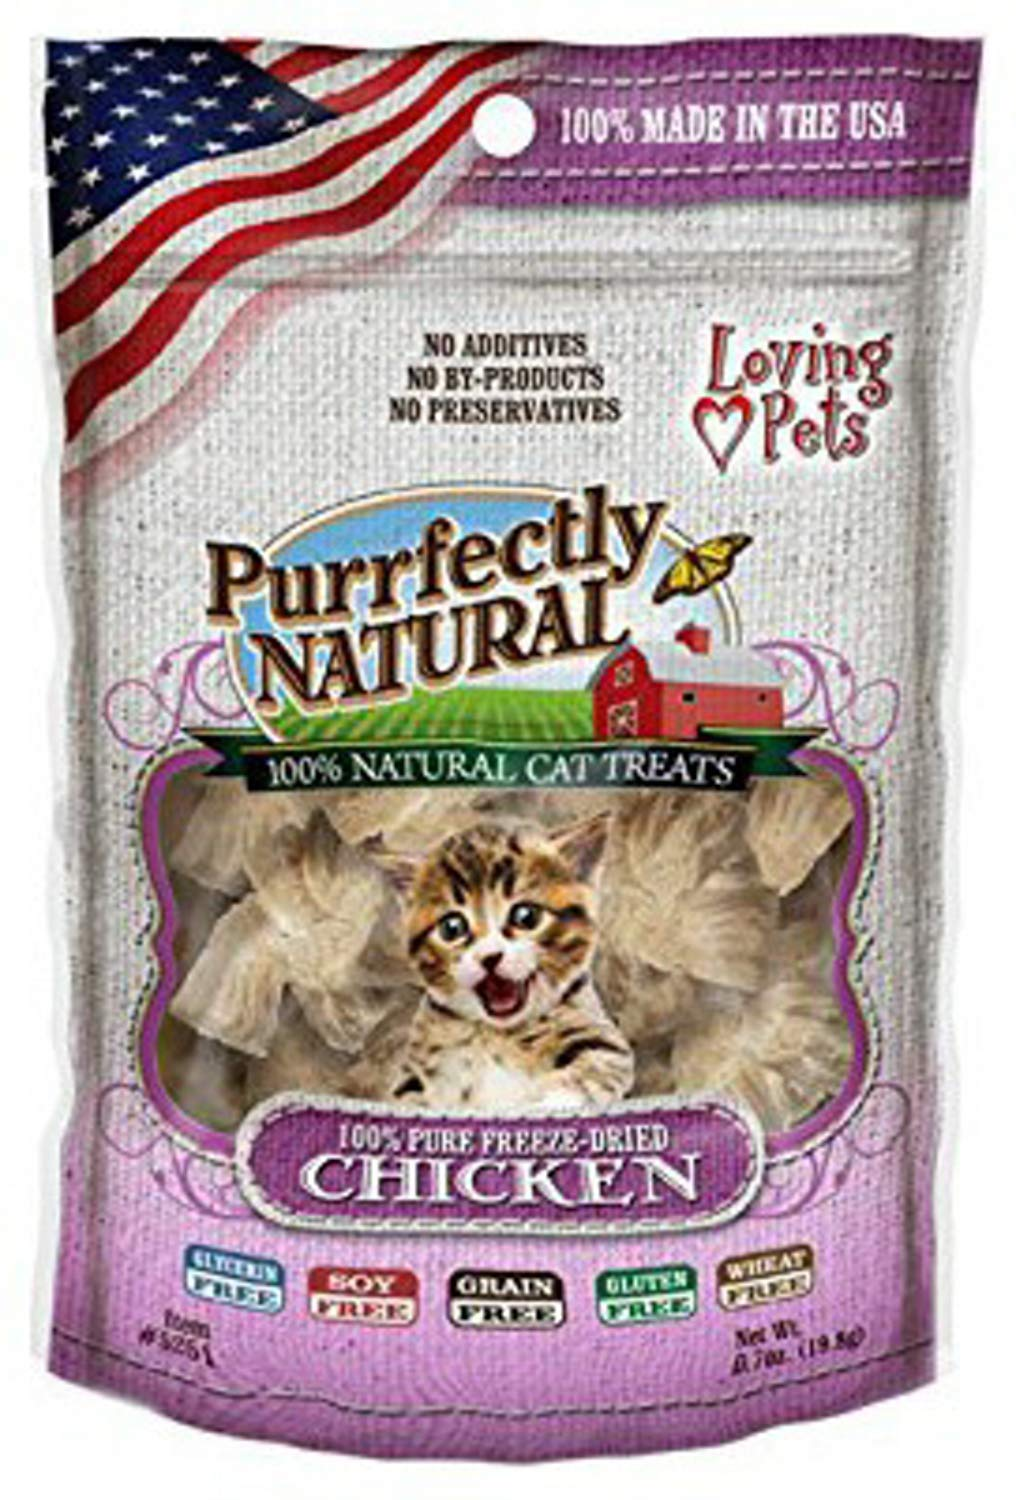 Loving Pets Freeze Dried Chicken Cat Treats, Purrfectly Natural, 6 Ounce, 24 Pack by Loving Pets